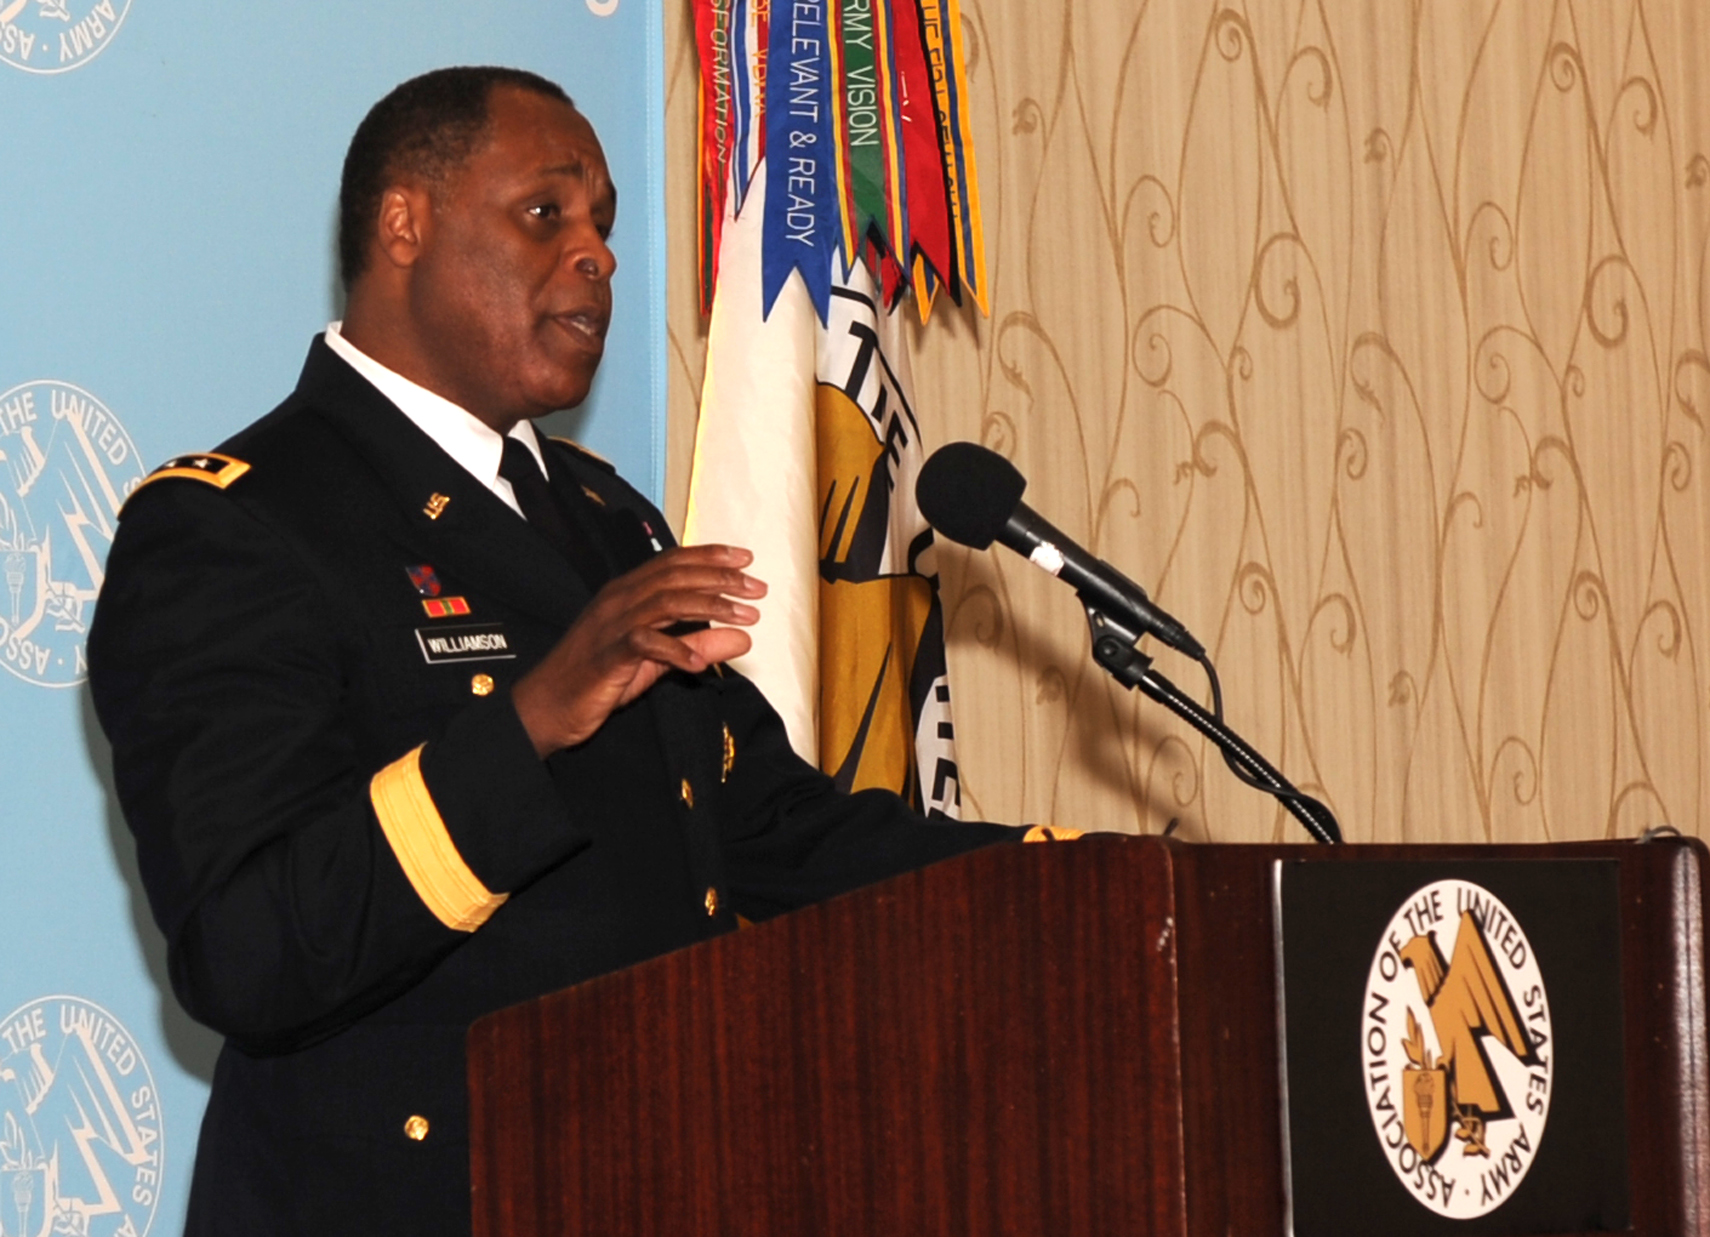 Lt. Gen. Michael E. Williamson, the principal military deputy to the assistant secretary of the Army for Acquisition, Logistics and Technology, talks about America's industrial base at the Association of the U.S. Army's monthly breakfast, in Arlington, Va., July 24, 2014. (Photo by J.D. Leipold)